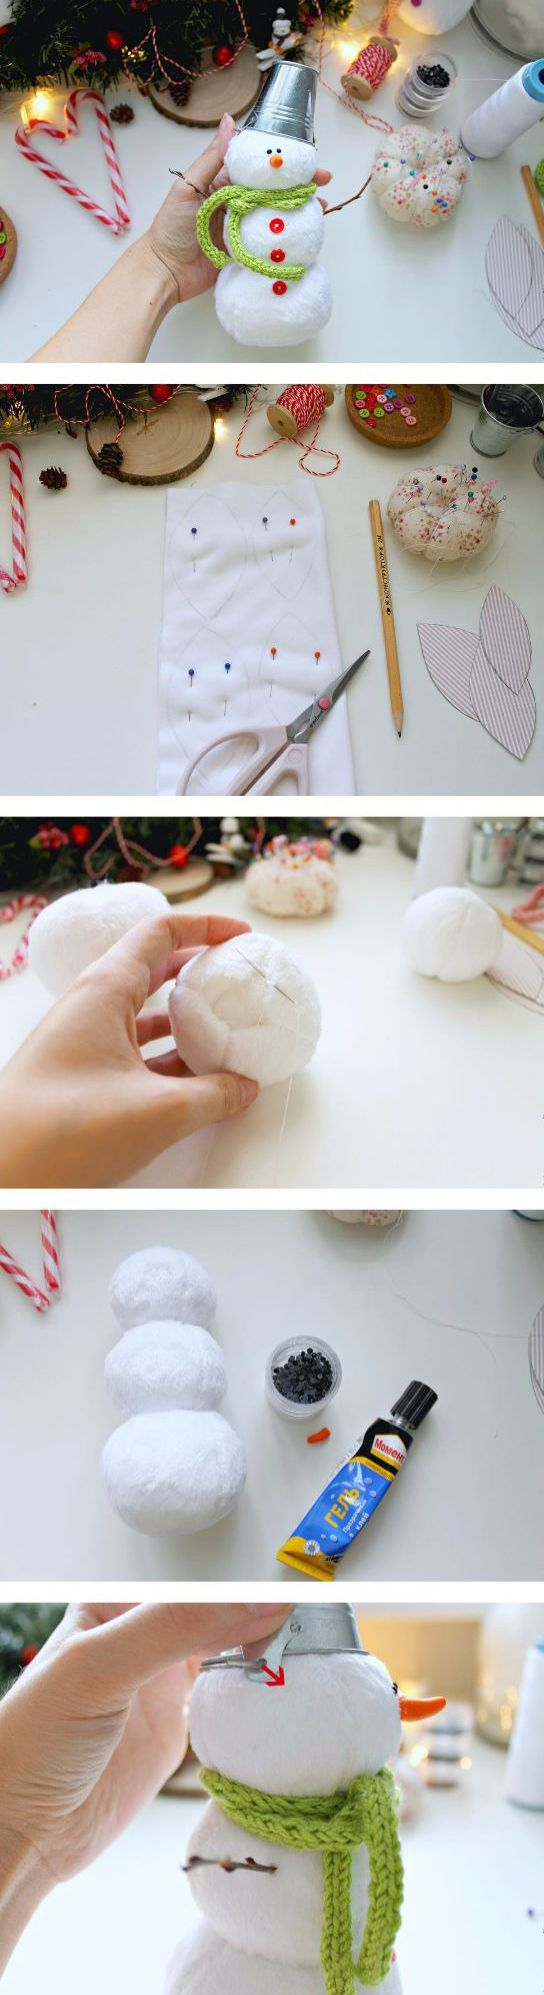 How to sew fabric Teddy Snowman. Click on image to see step-by-step tutorial